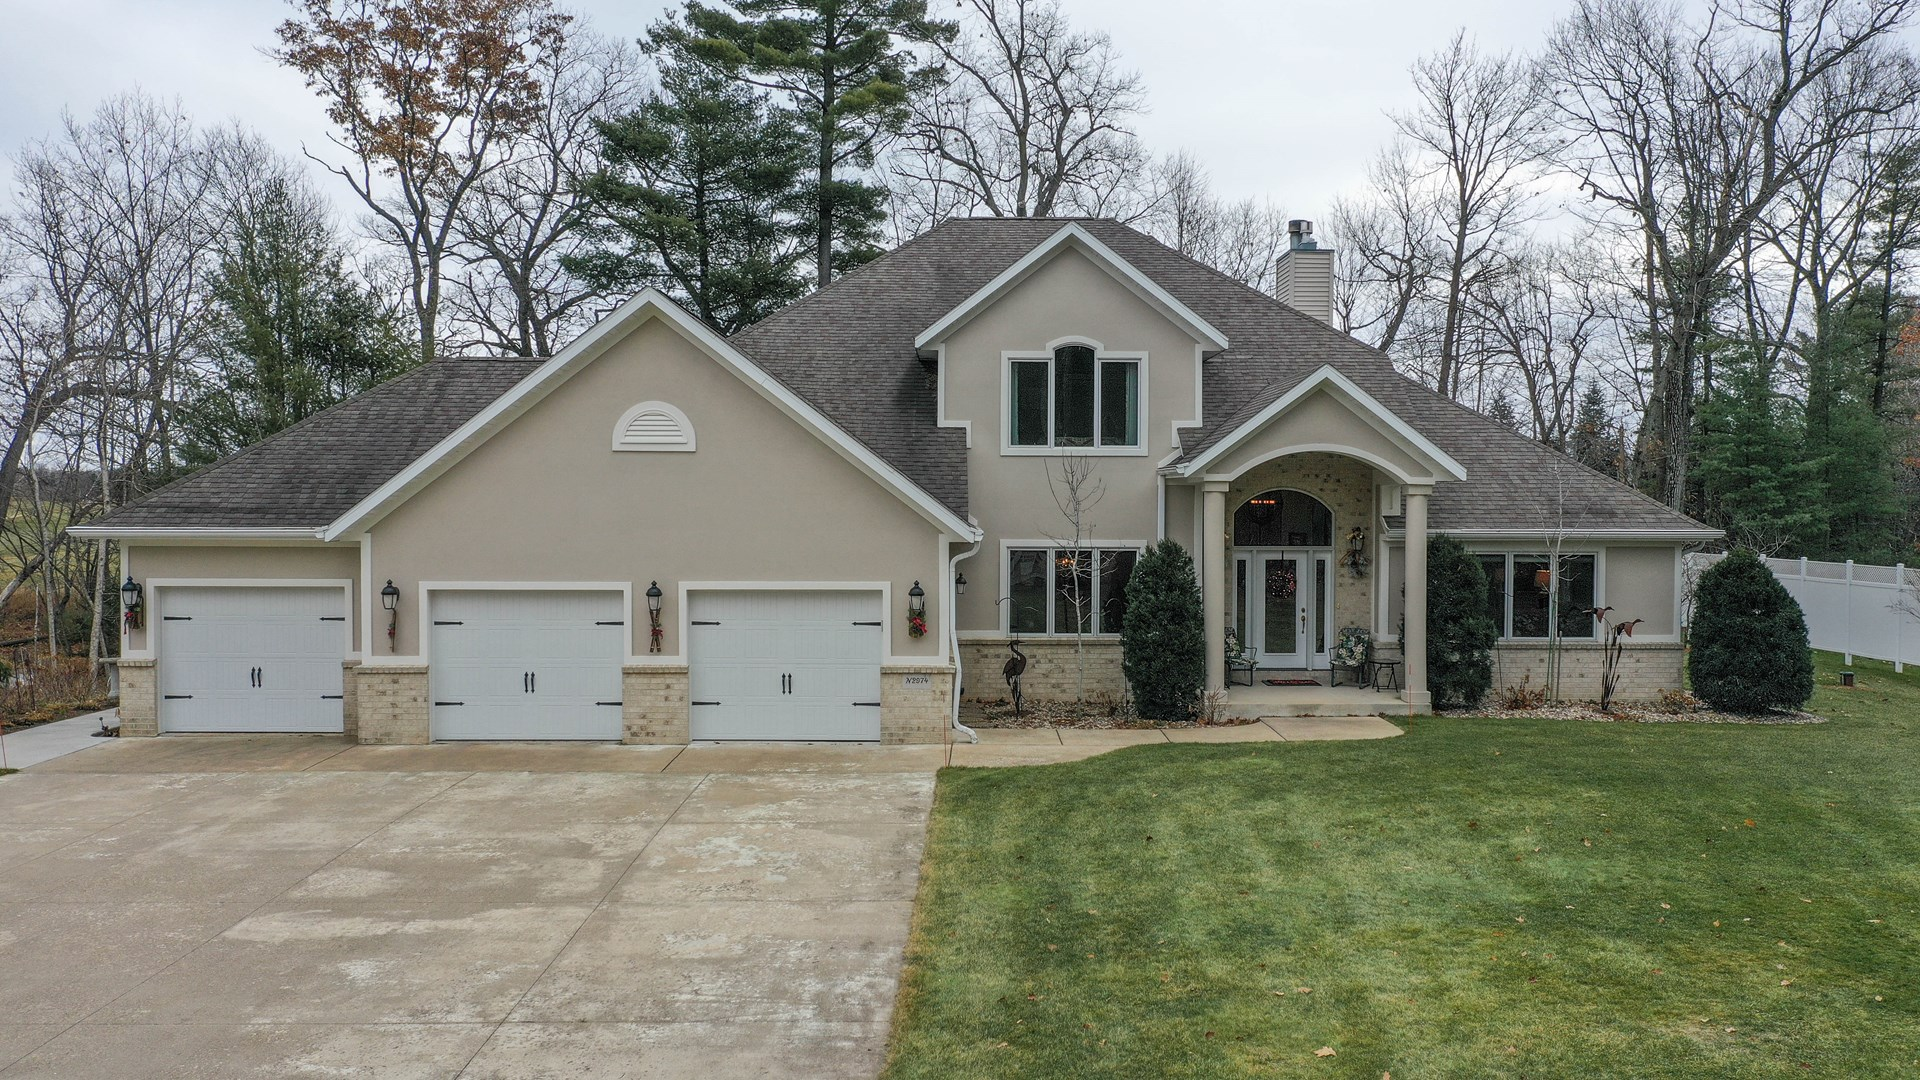 Luxury Home For Sale In Waupaca, WI